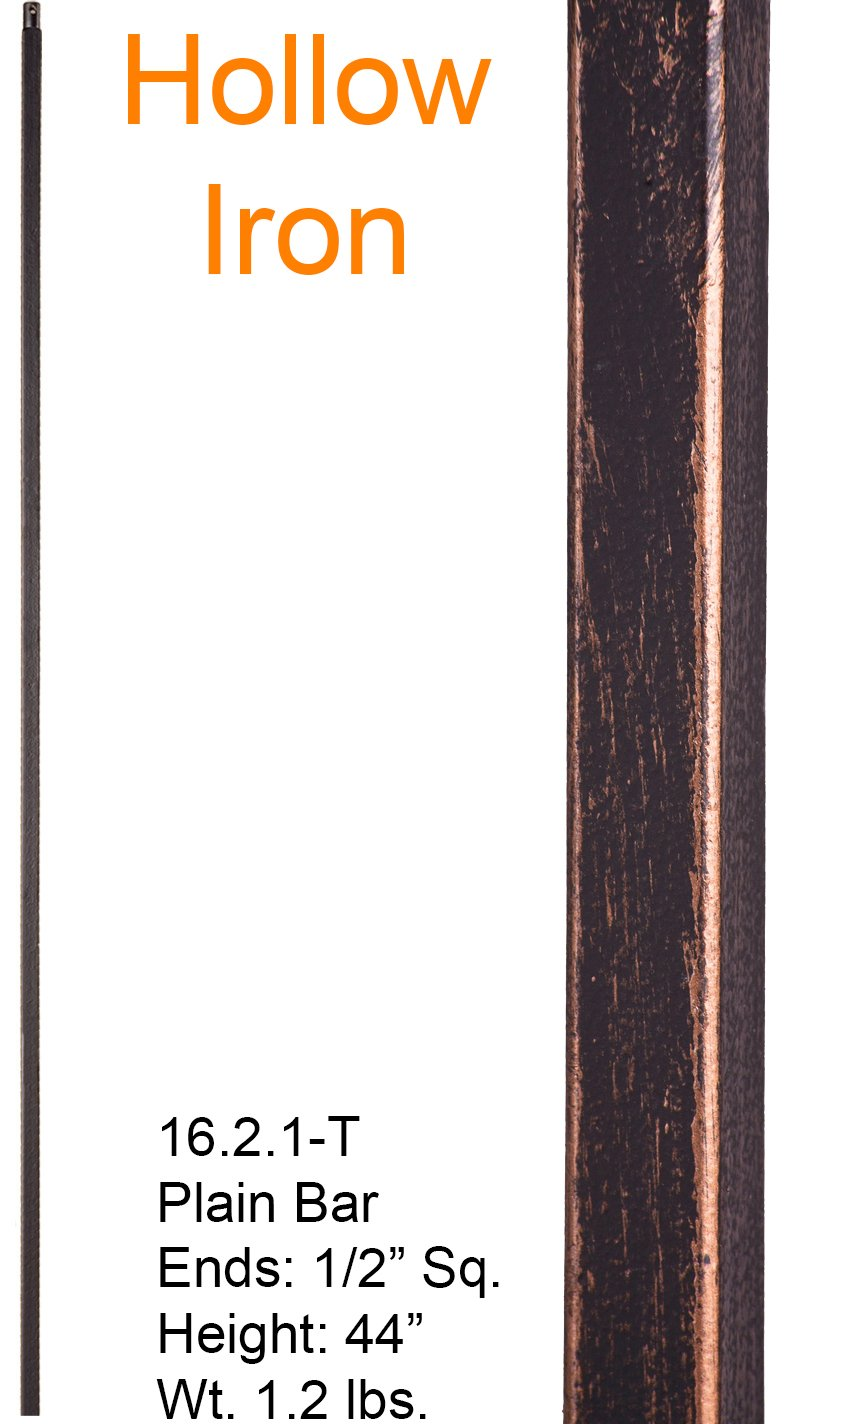 Oil Rubbed Bronze 16.2.1-T Hollow Plain Straight Bar Iron Baluster for Staircase Remodel, Box of 5